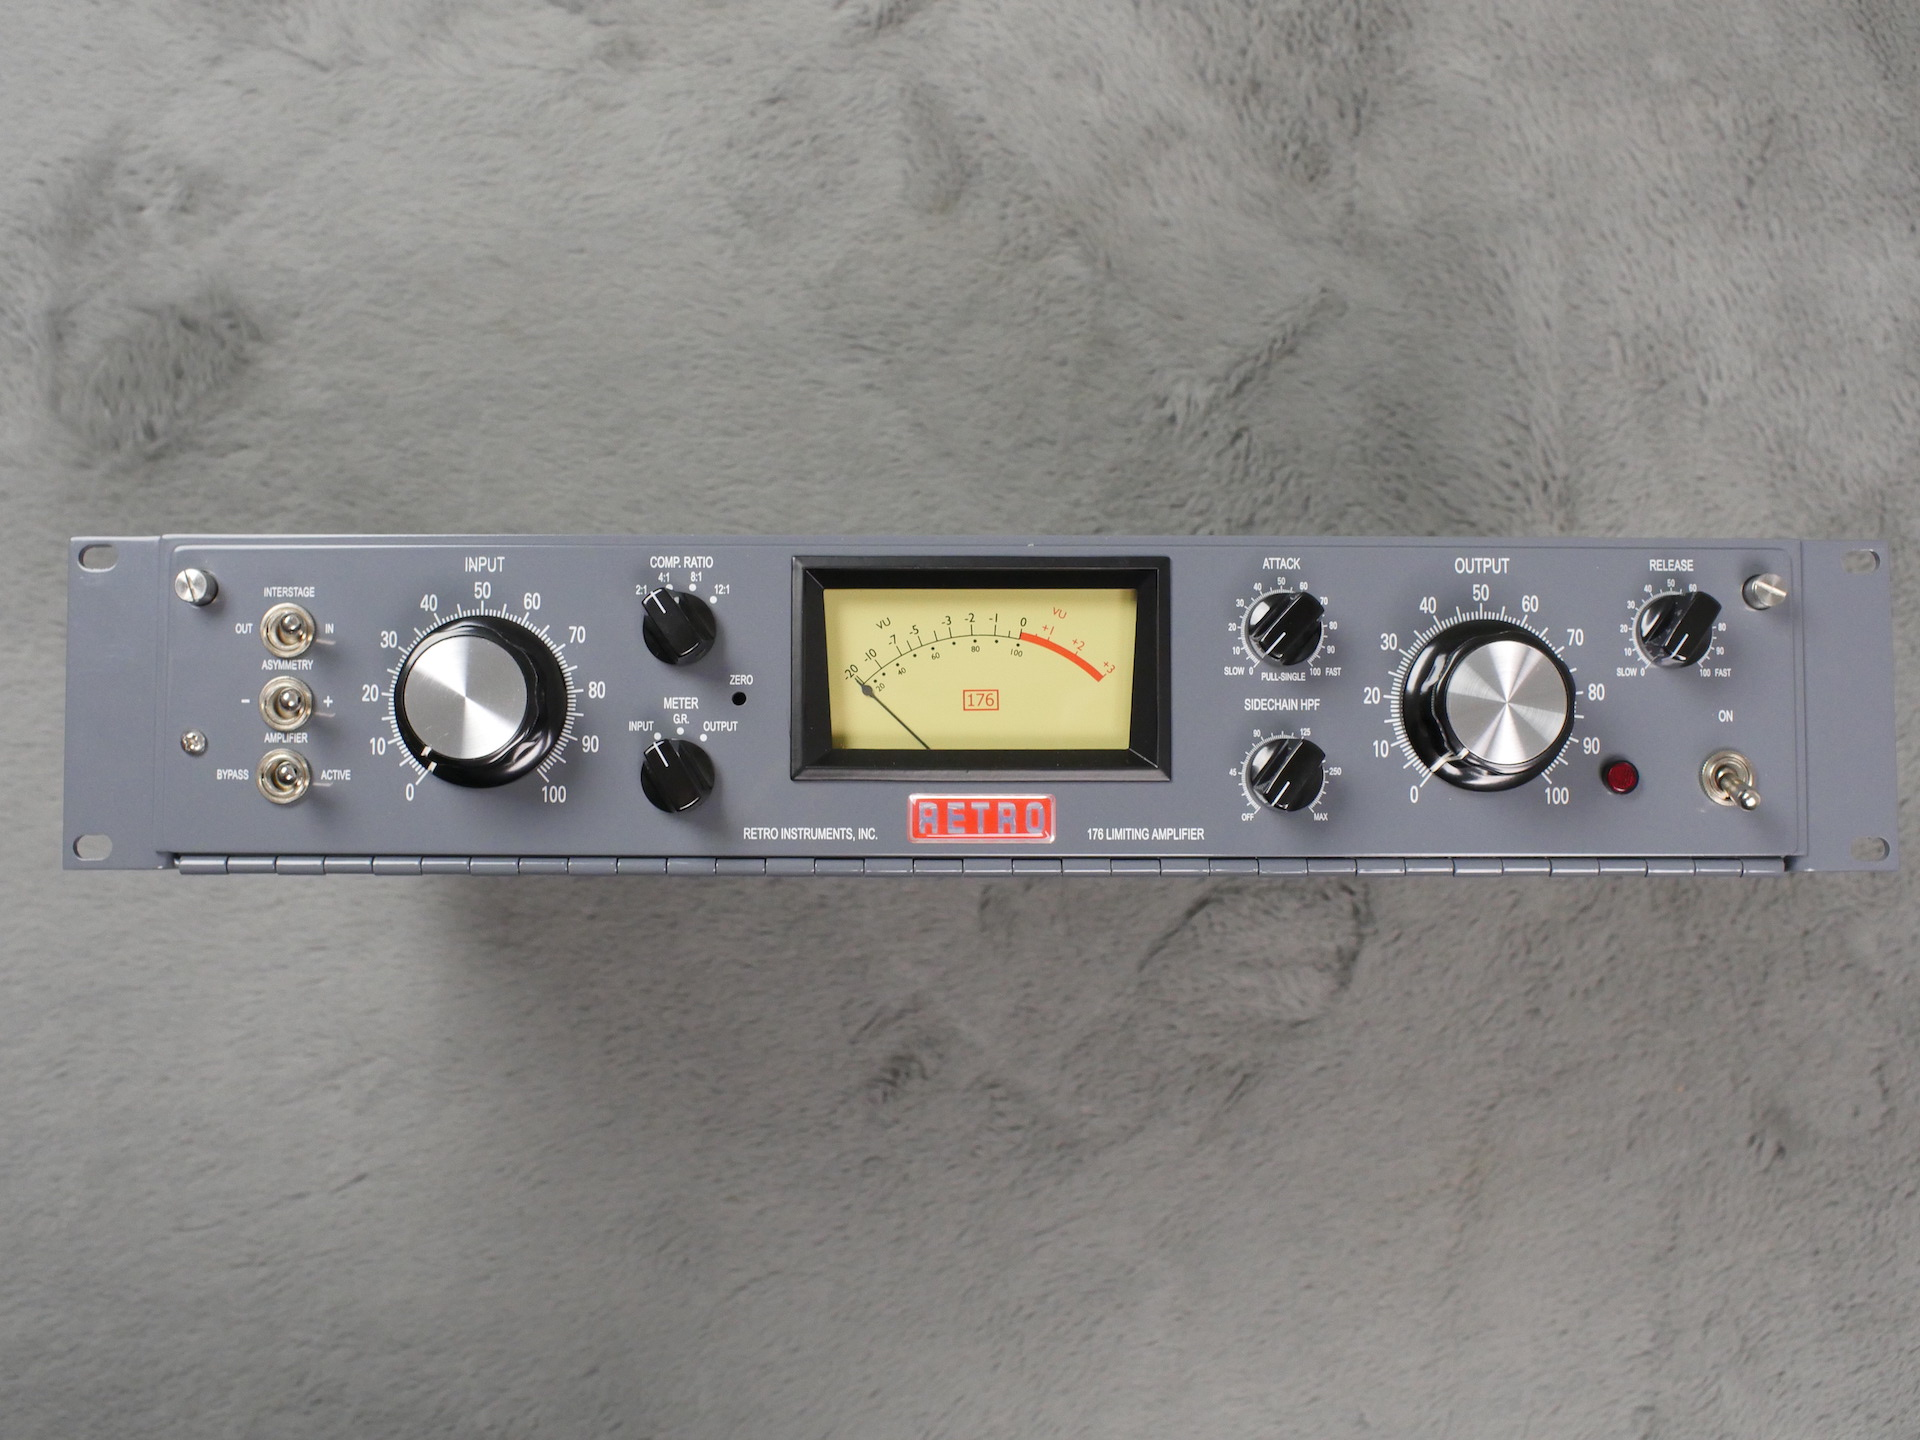 Retro Instruments 176 compressor limiter S/N 1211 - MINT and Boxed!